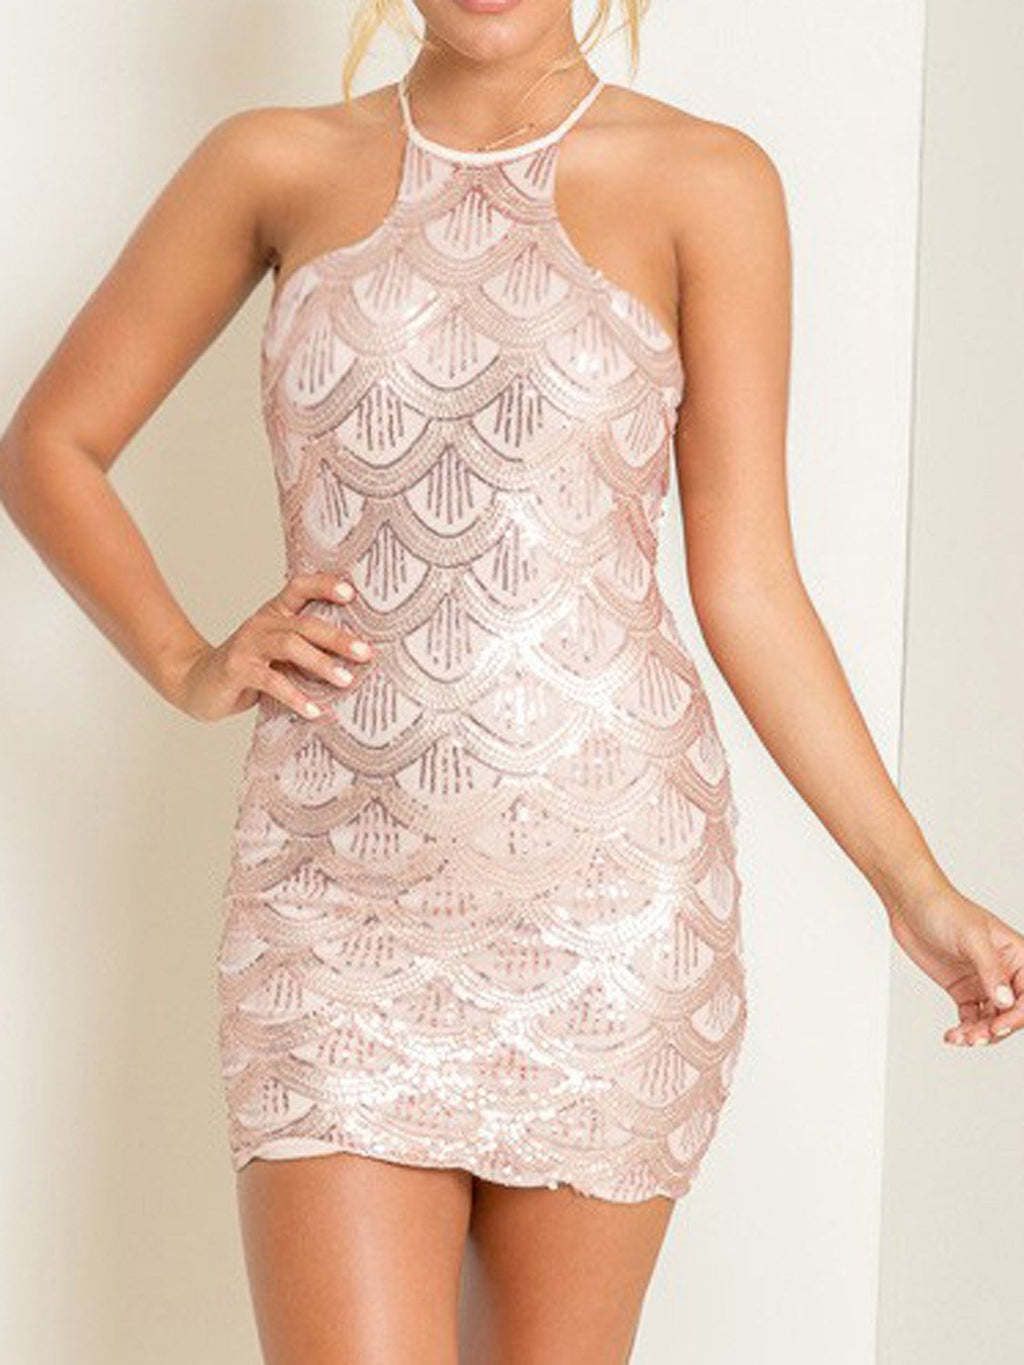 Pink Halter Sequin Scale Pattern Sheer Insert Bodycon Dress - MYNYstyle - 1